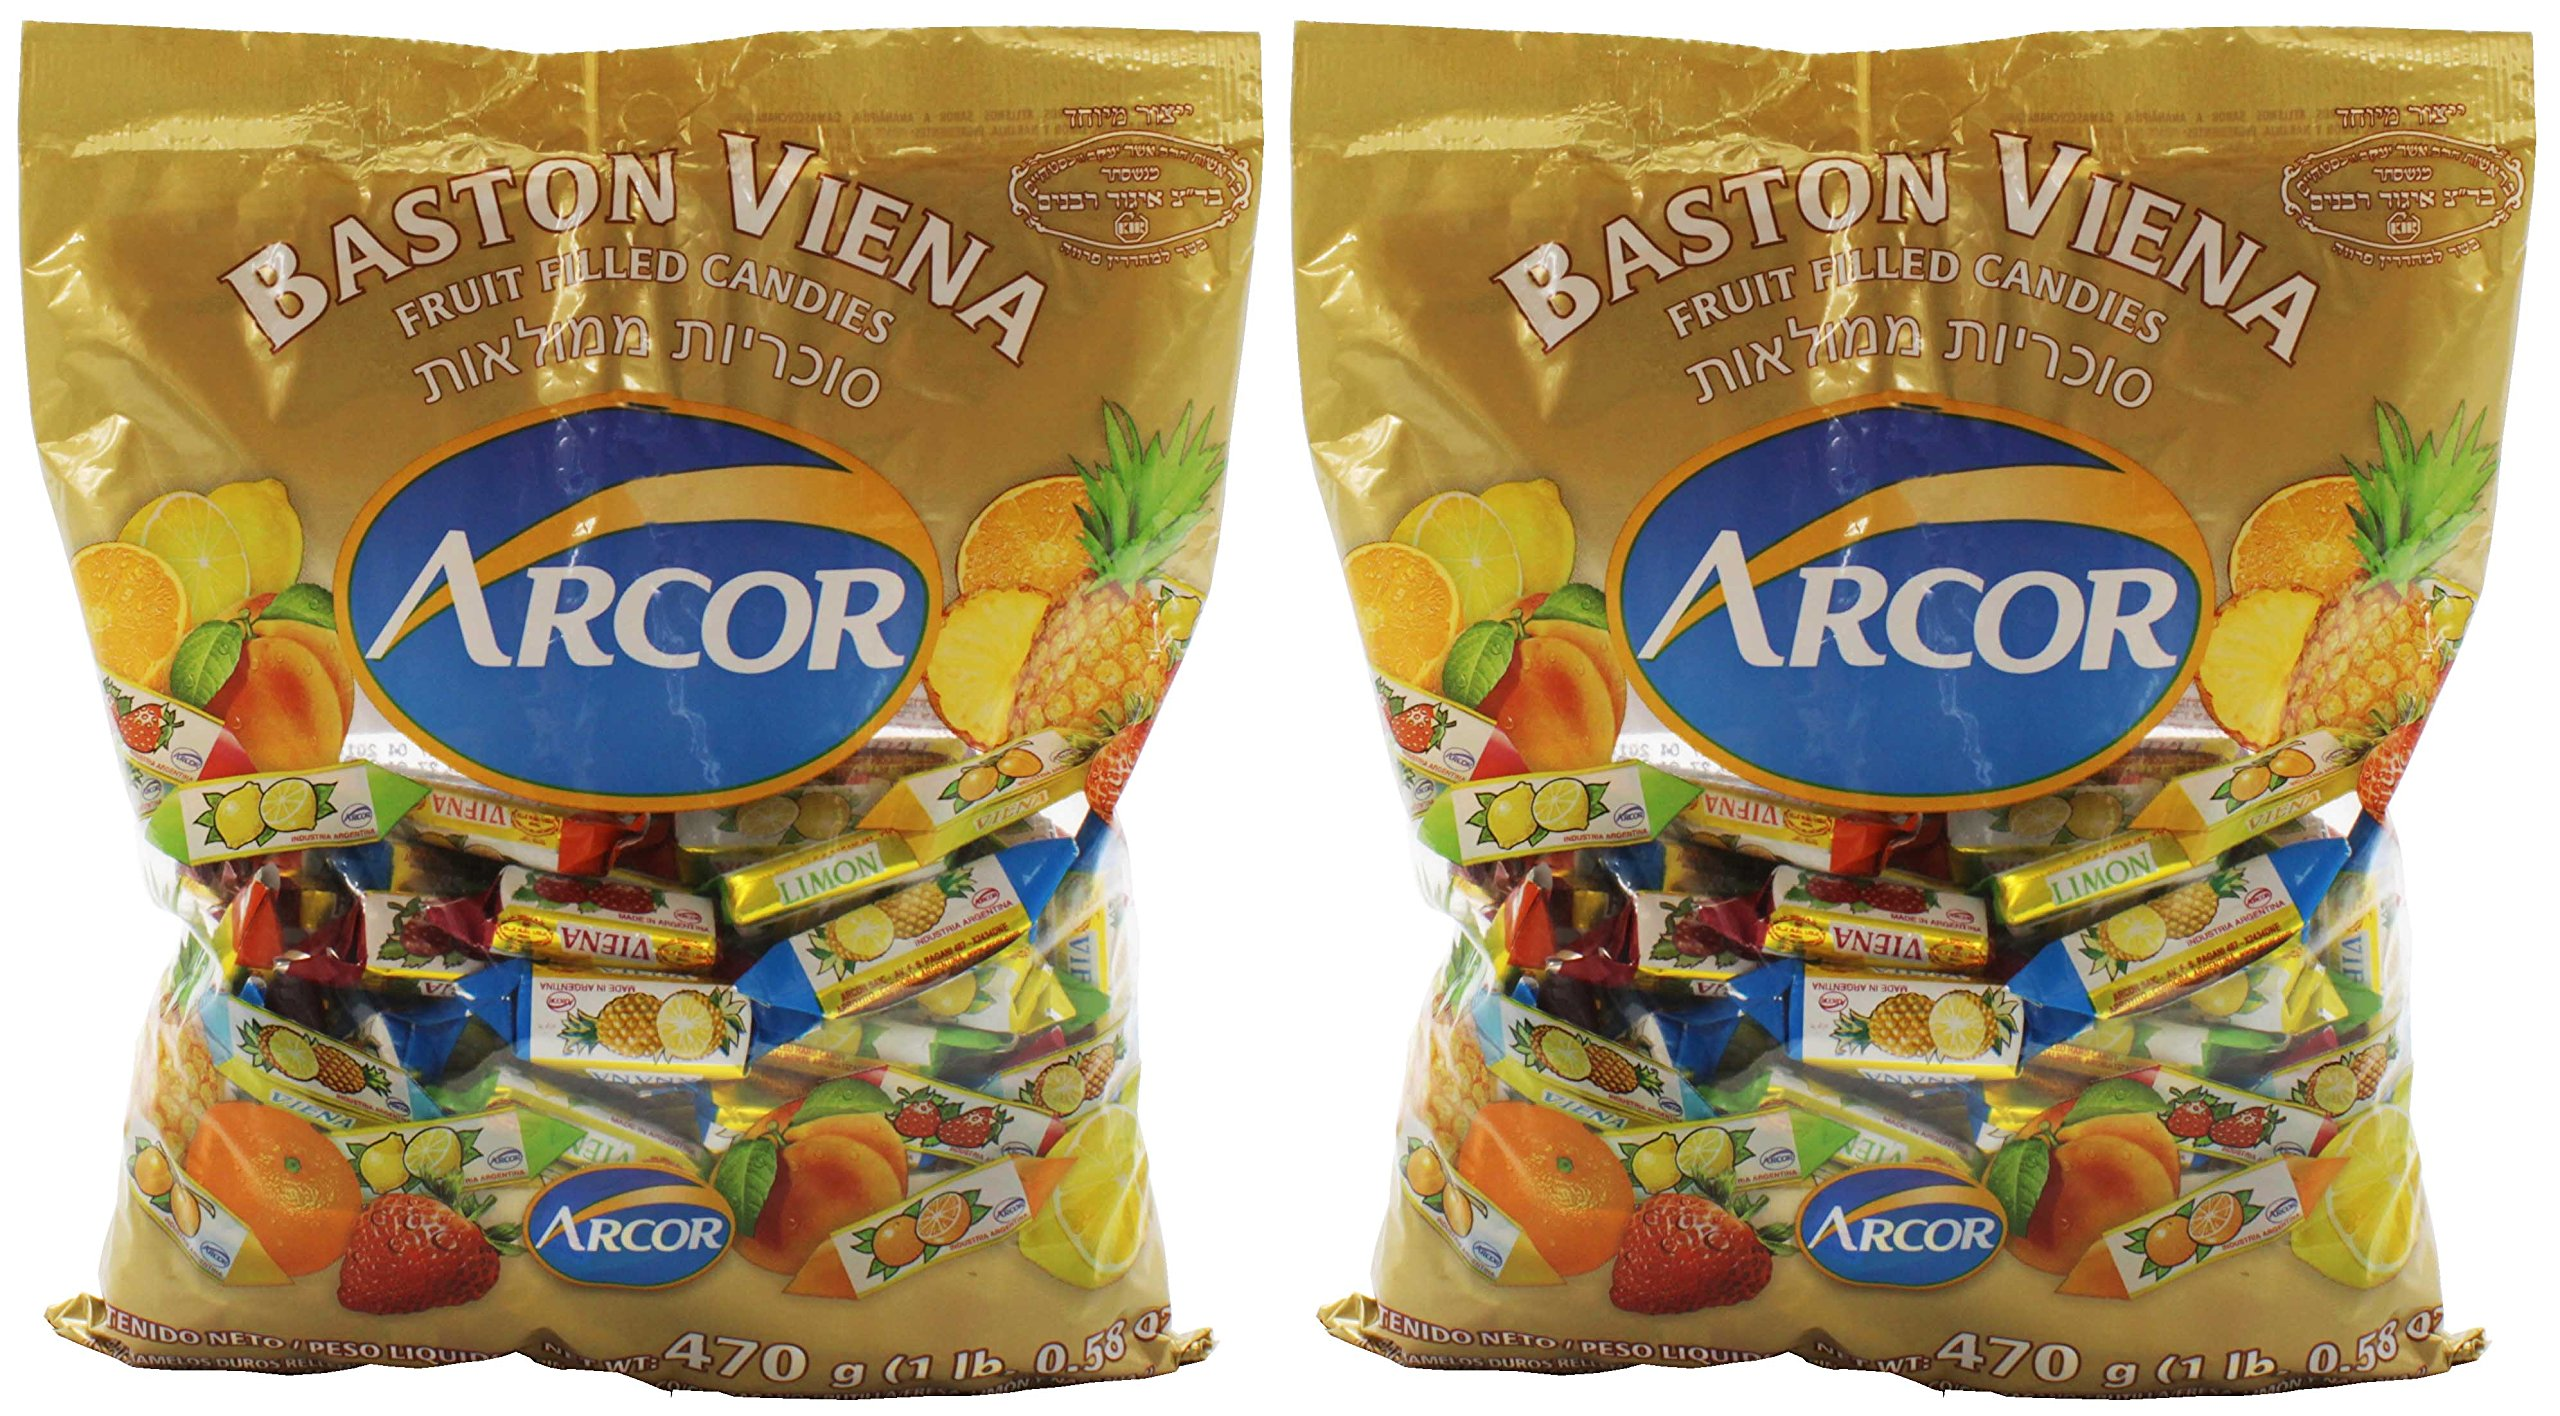 Arcor Vienna Fruit Filled Kosher Candy, 2 pack - 470 gms each